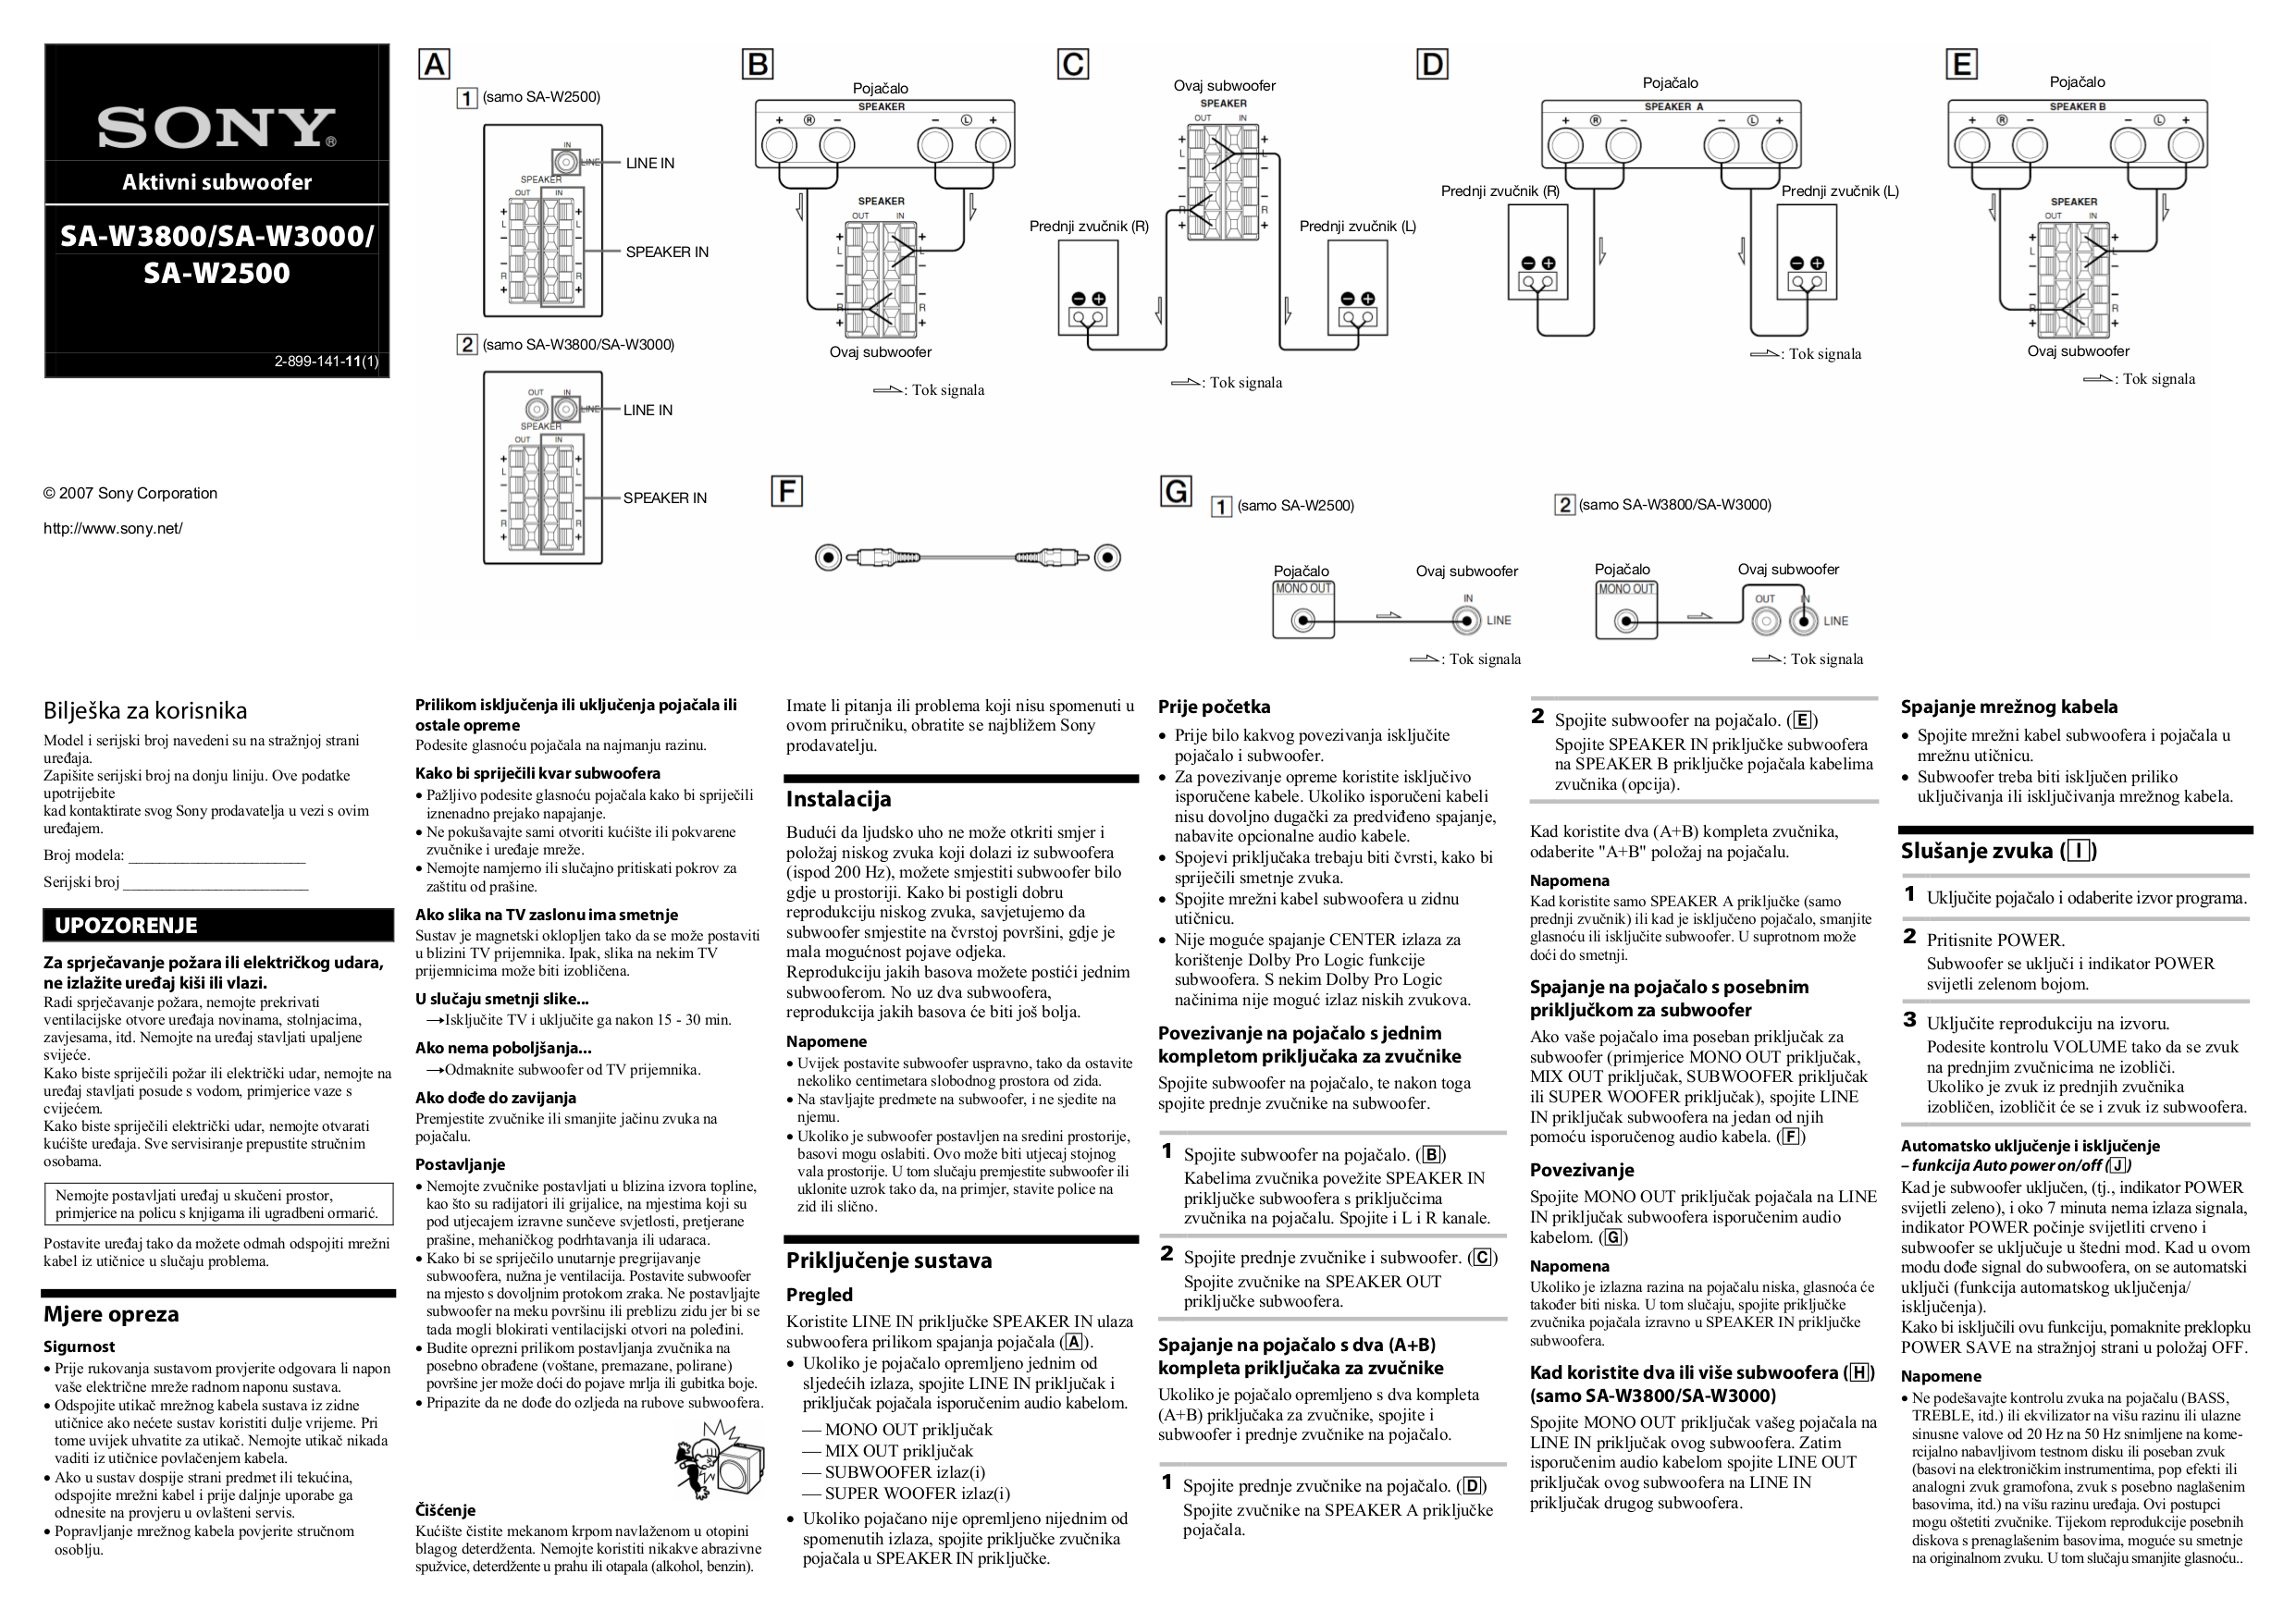 download free pdf for sony sa w3000 subwoofer manual rh umlib com Sony Home Subwoofer Sony SA W303 Subwoofer Specs